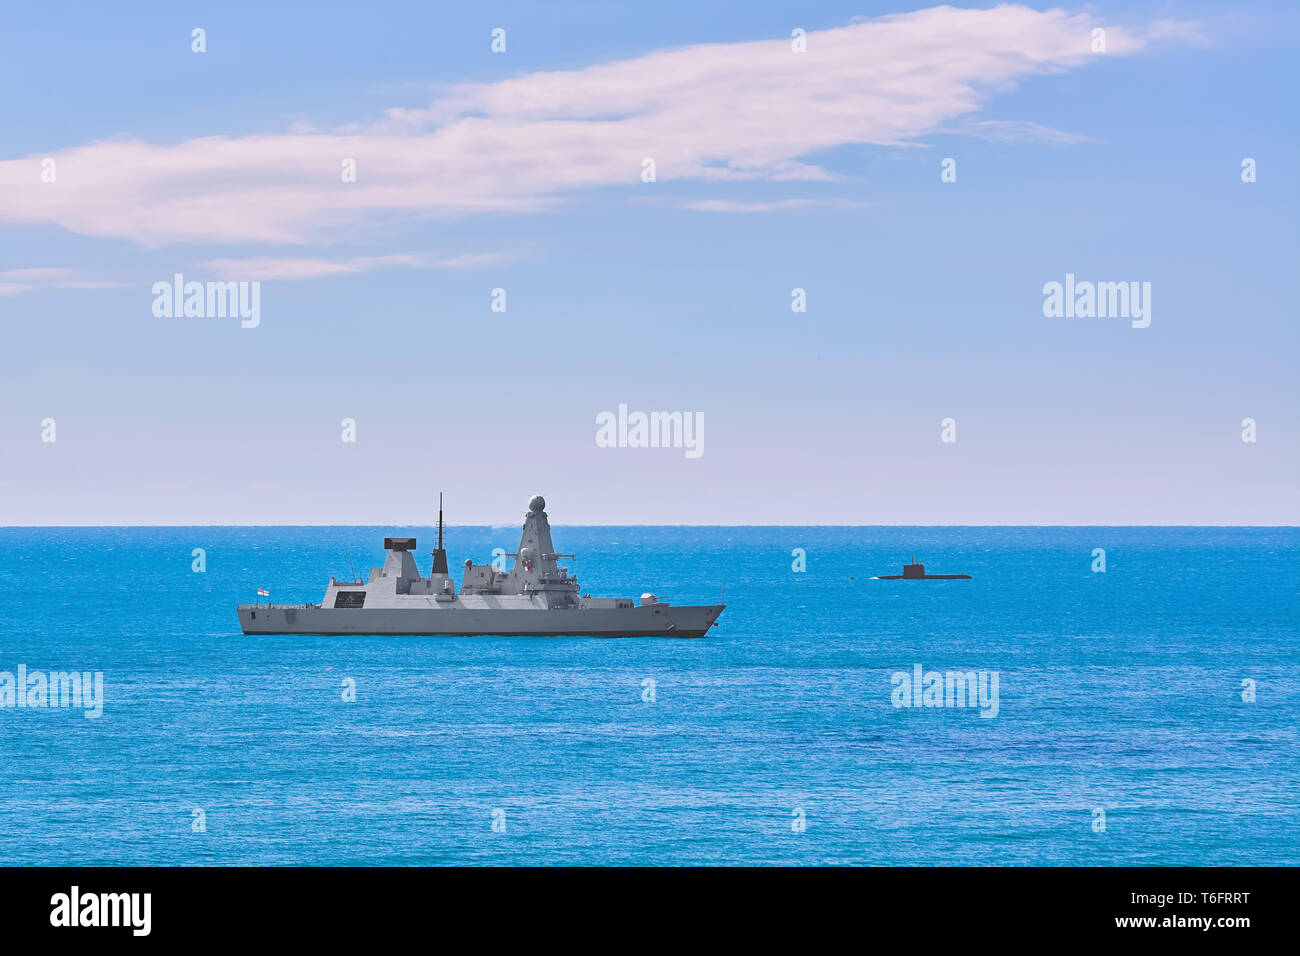 Air-defence Destroyer in the Sea - Stock Image